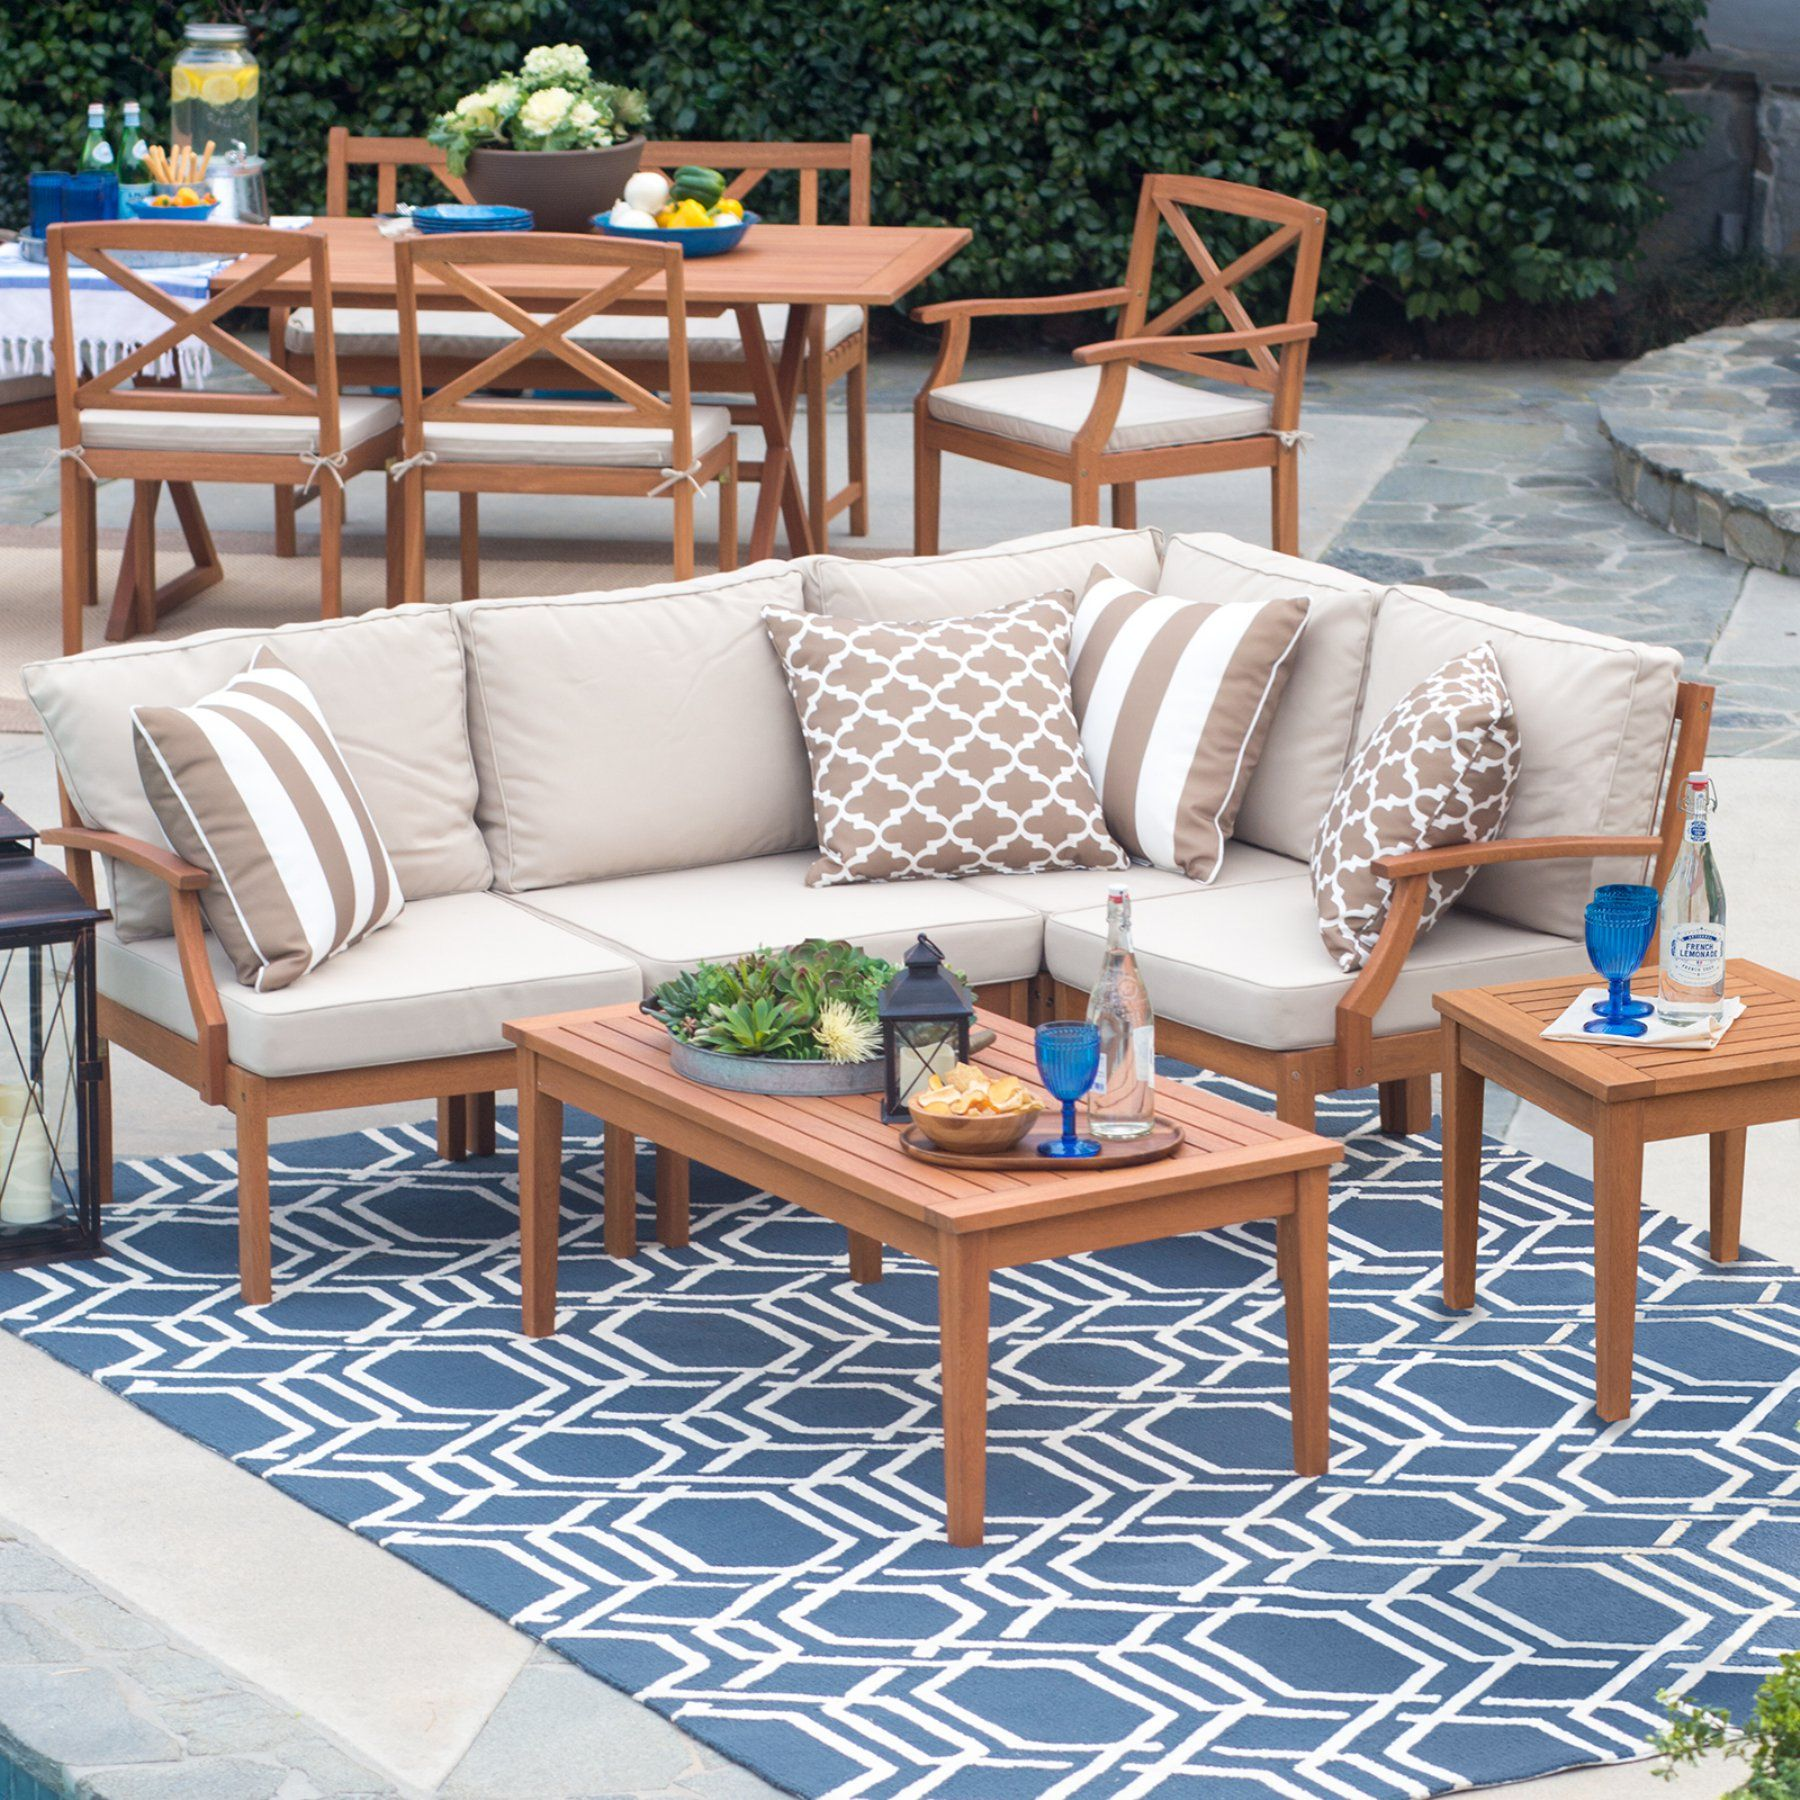 Belham Living Brighton Outdoor Wood Conversation Sectional ... on Belham Living Brighton Outdoor Daybed id=59940